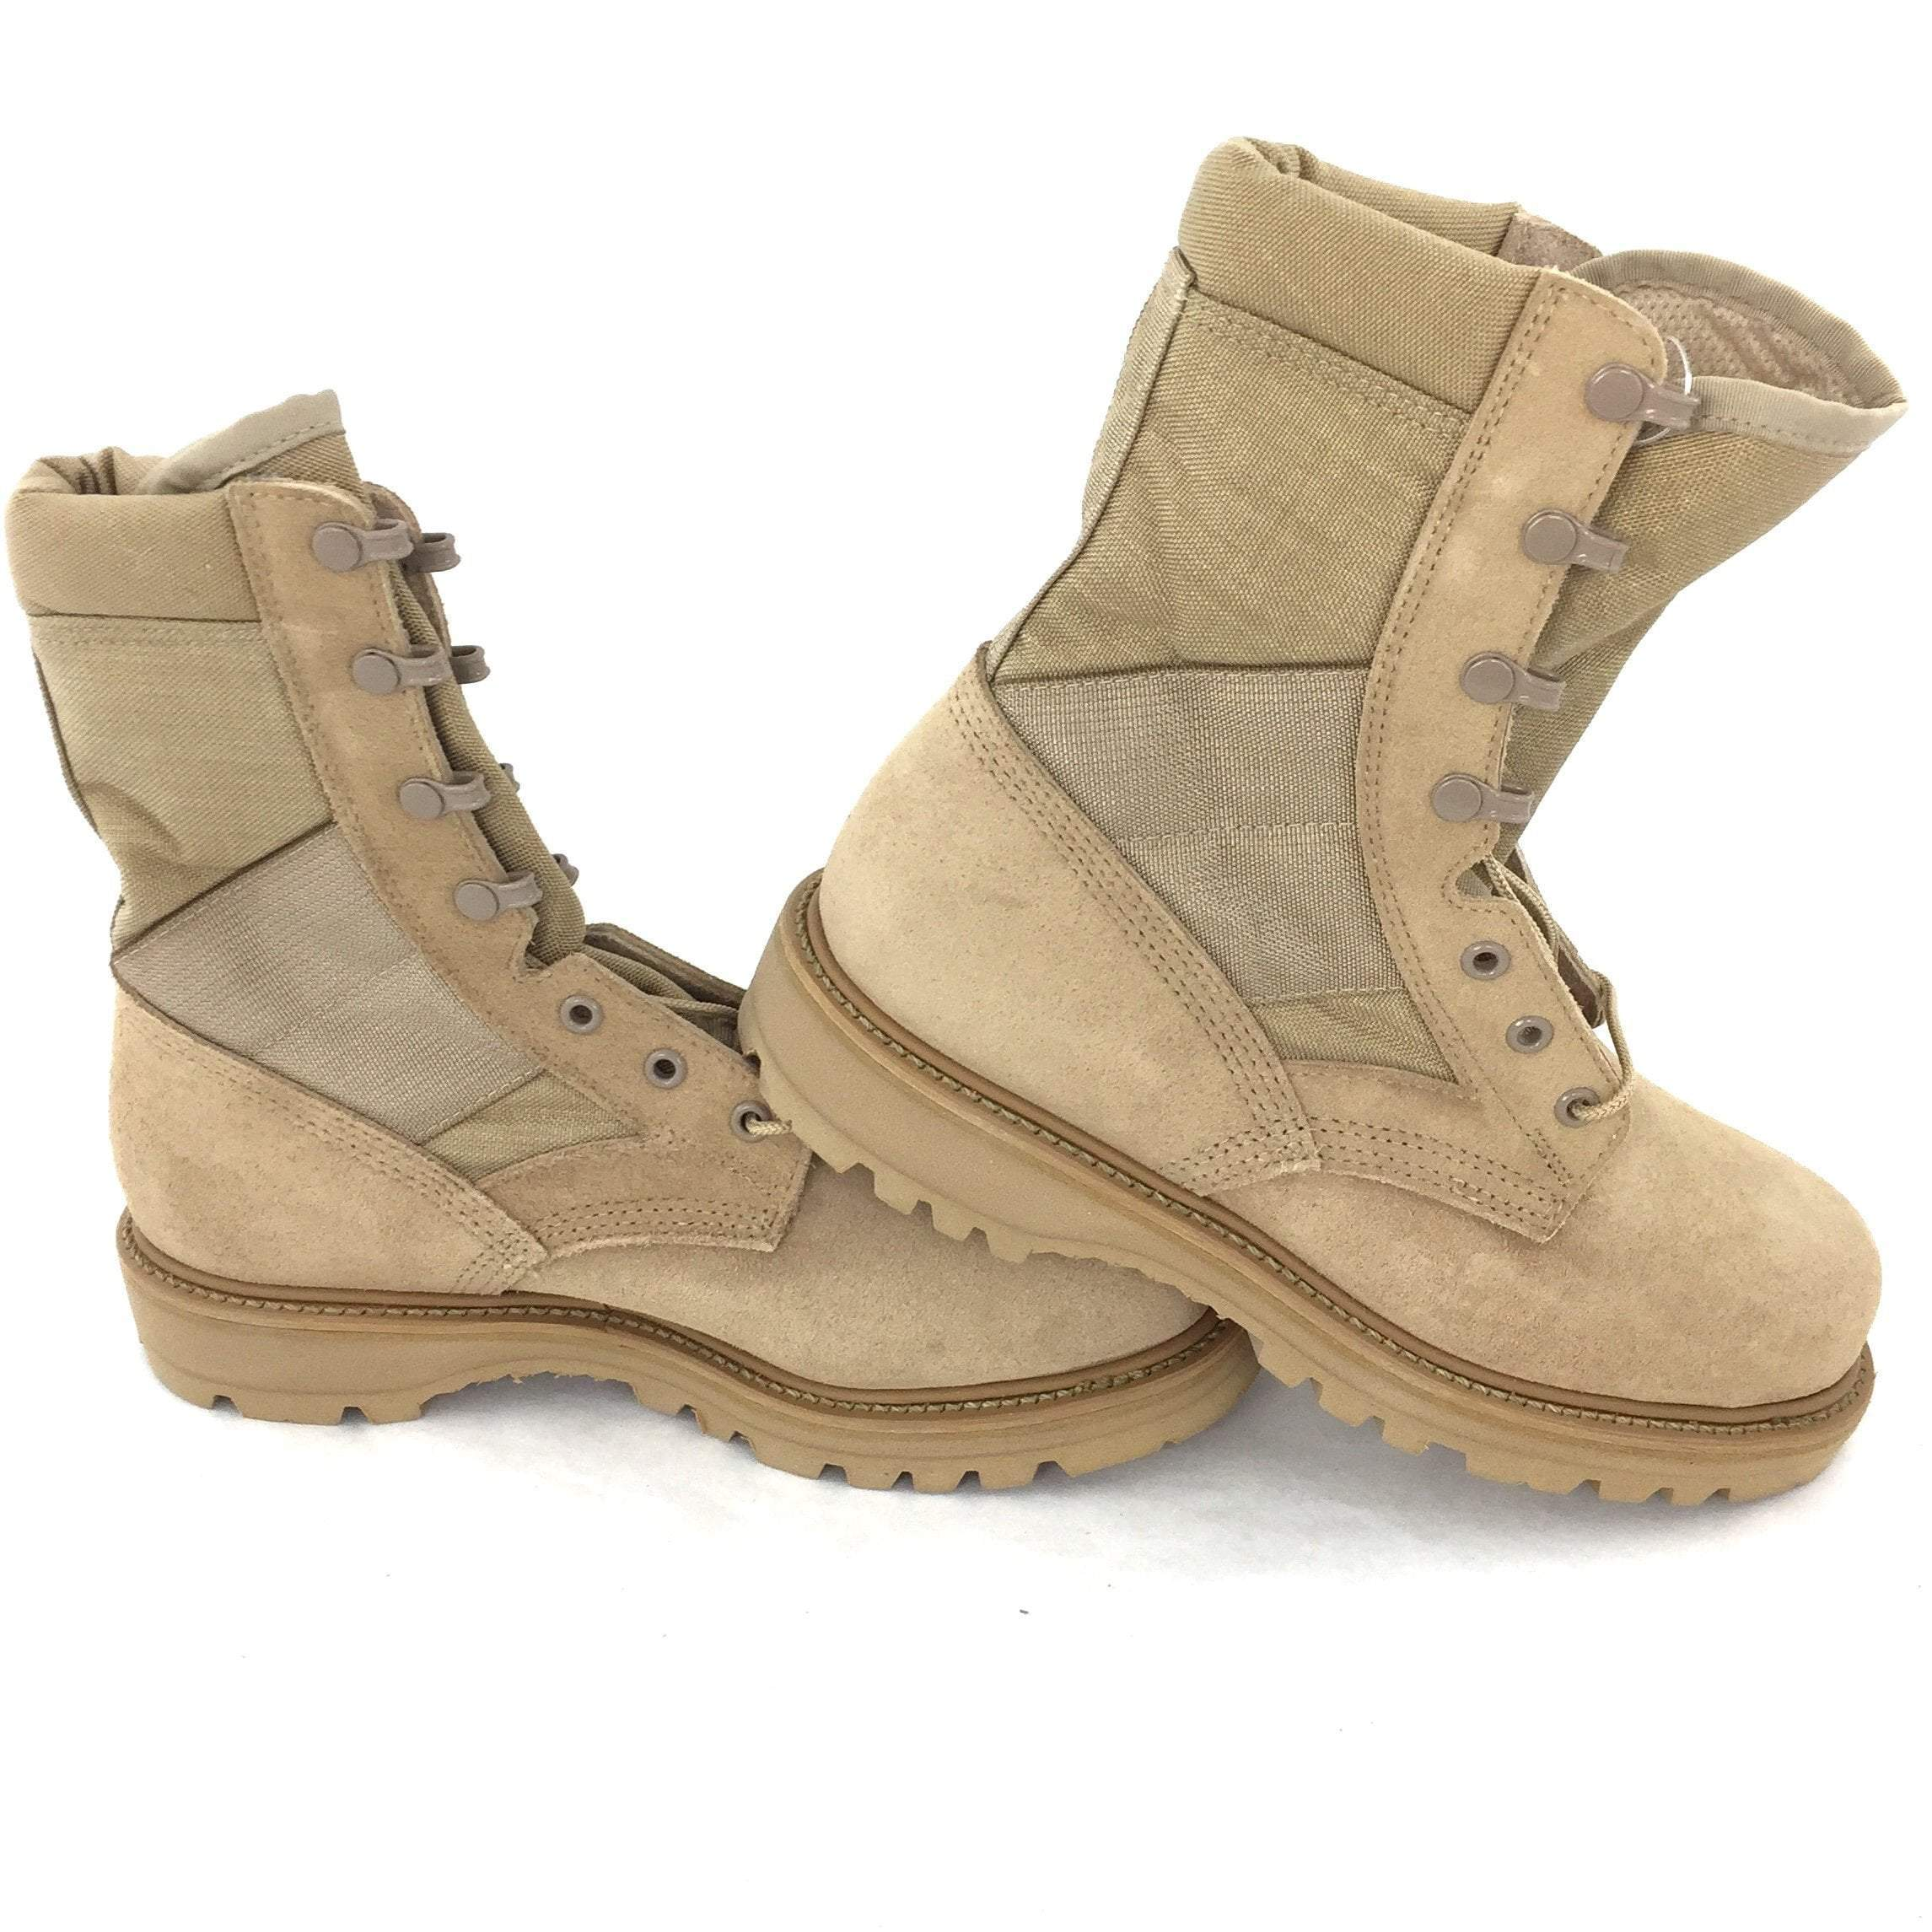 Thorogood Hot Weather Boots, Size 7.5W Desert Tan